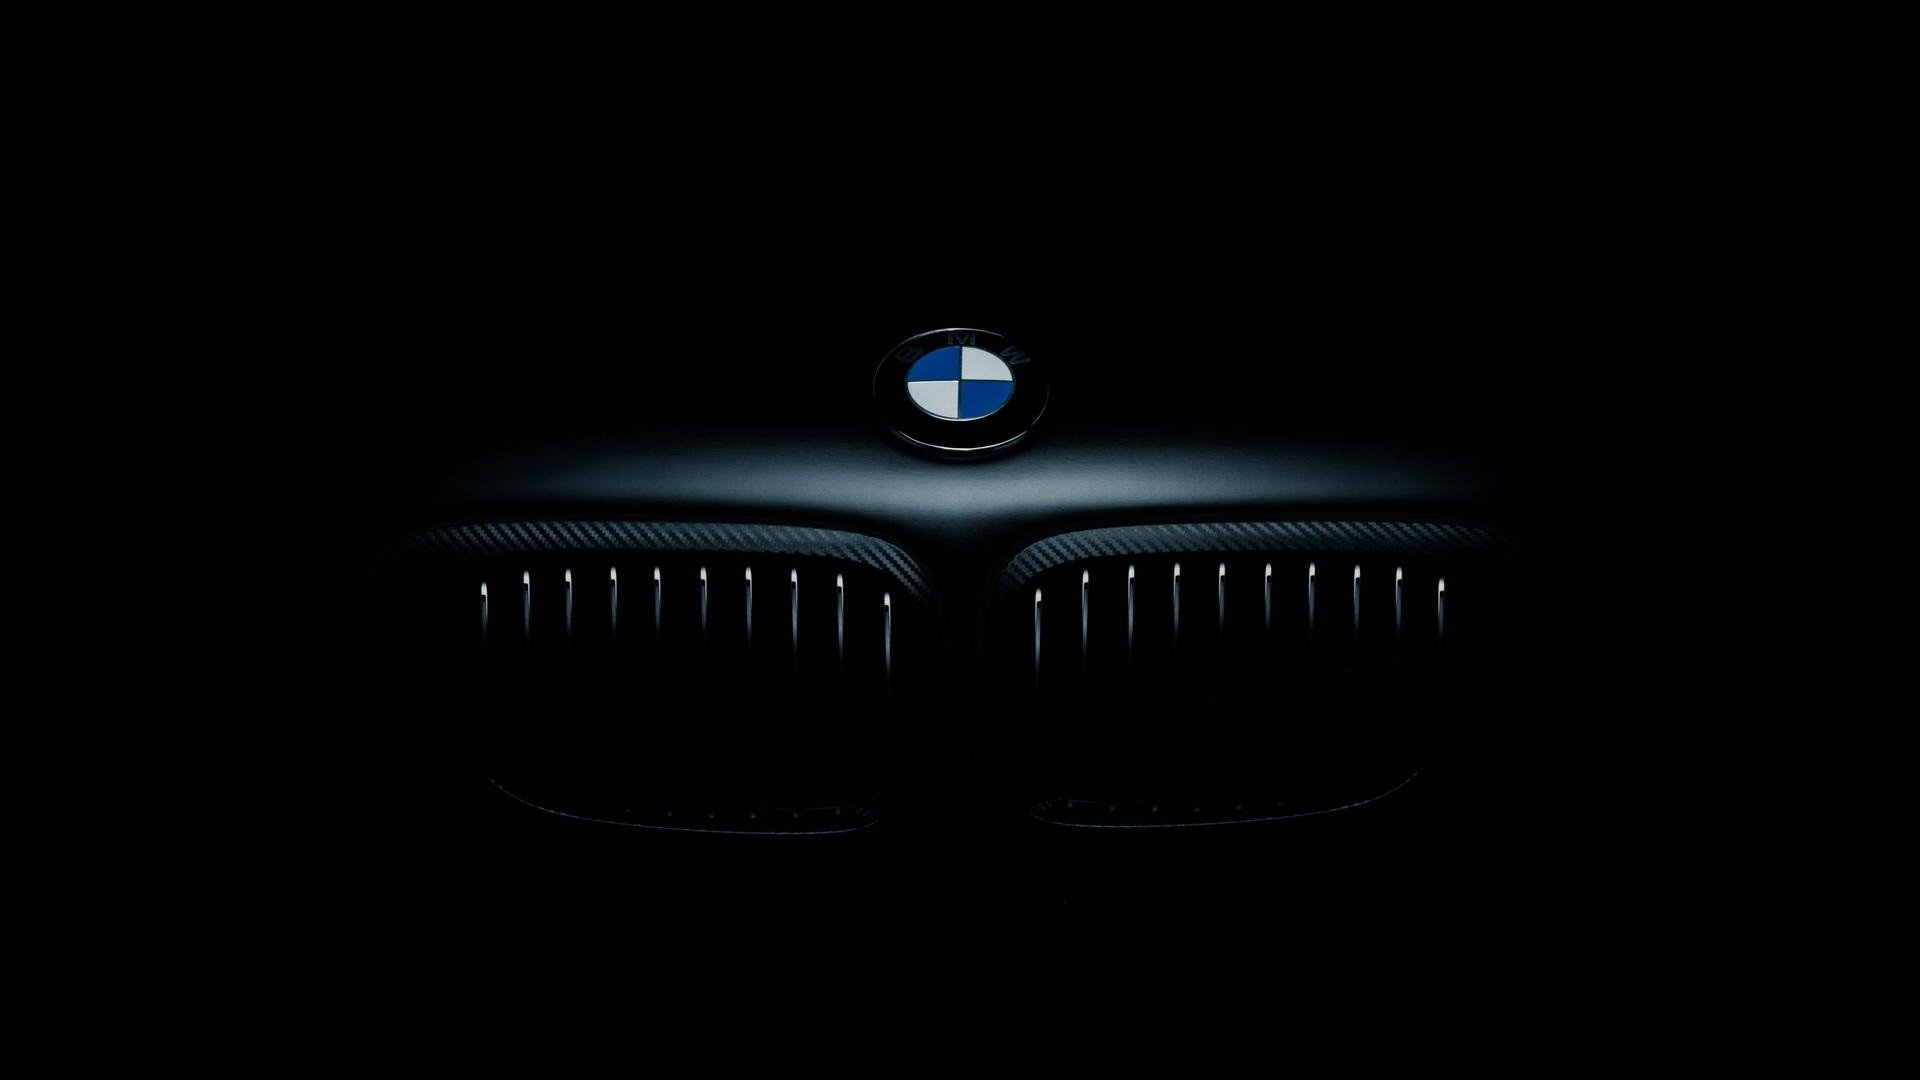 Bmw Logo Car Dark Wallpaper 1920x1080 439468 Wallpaperup